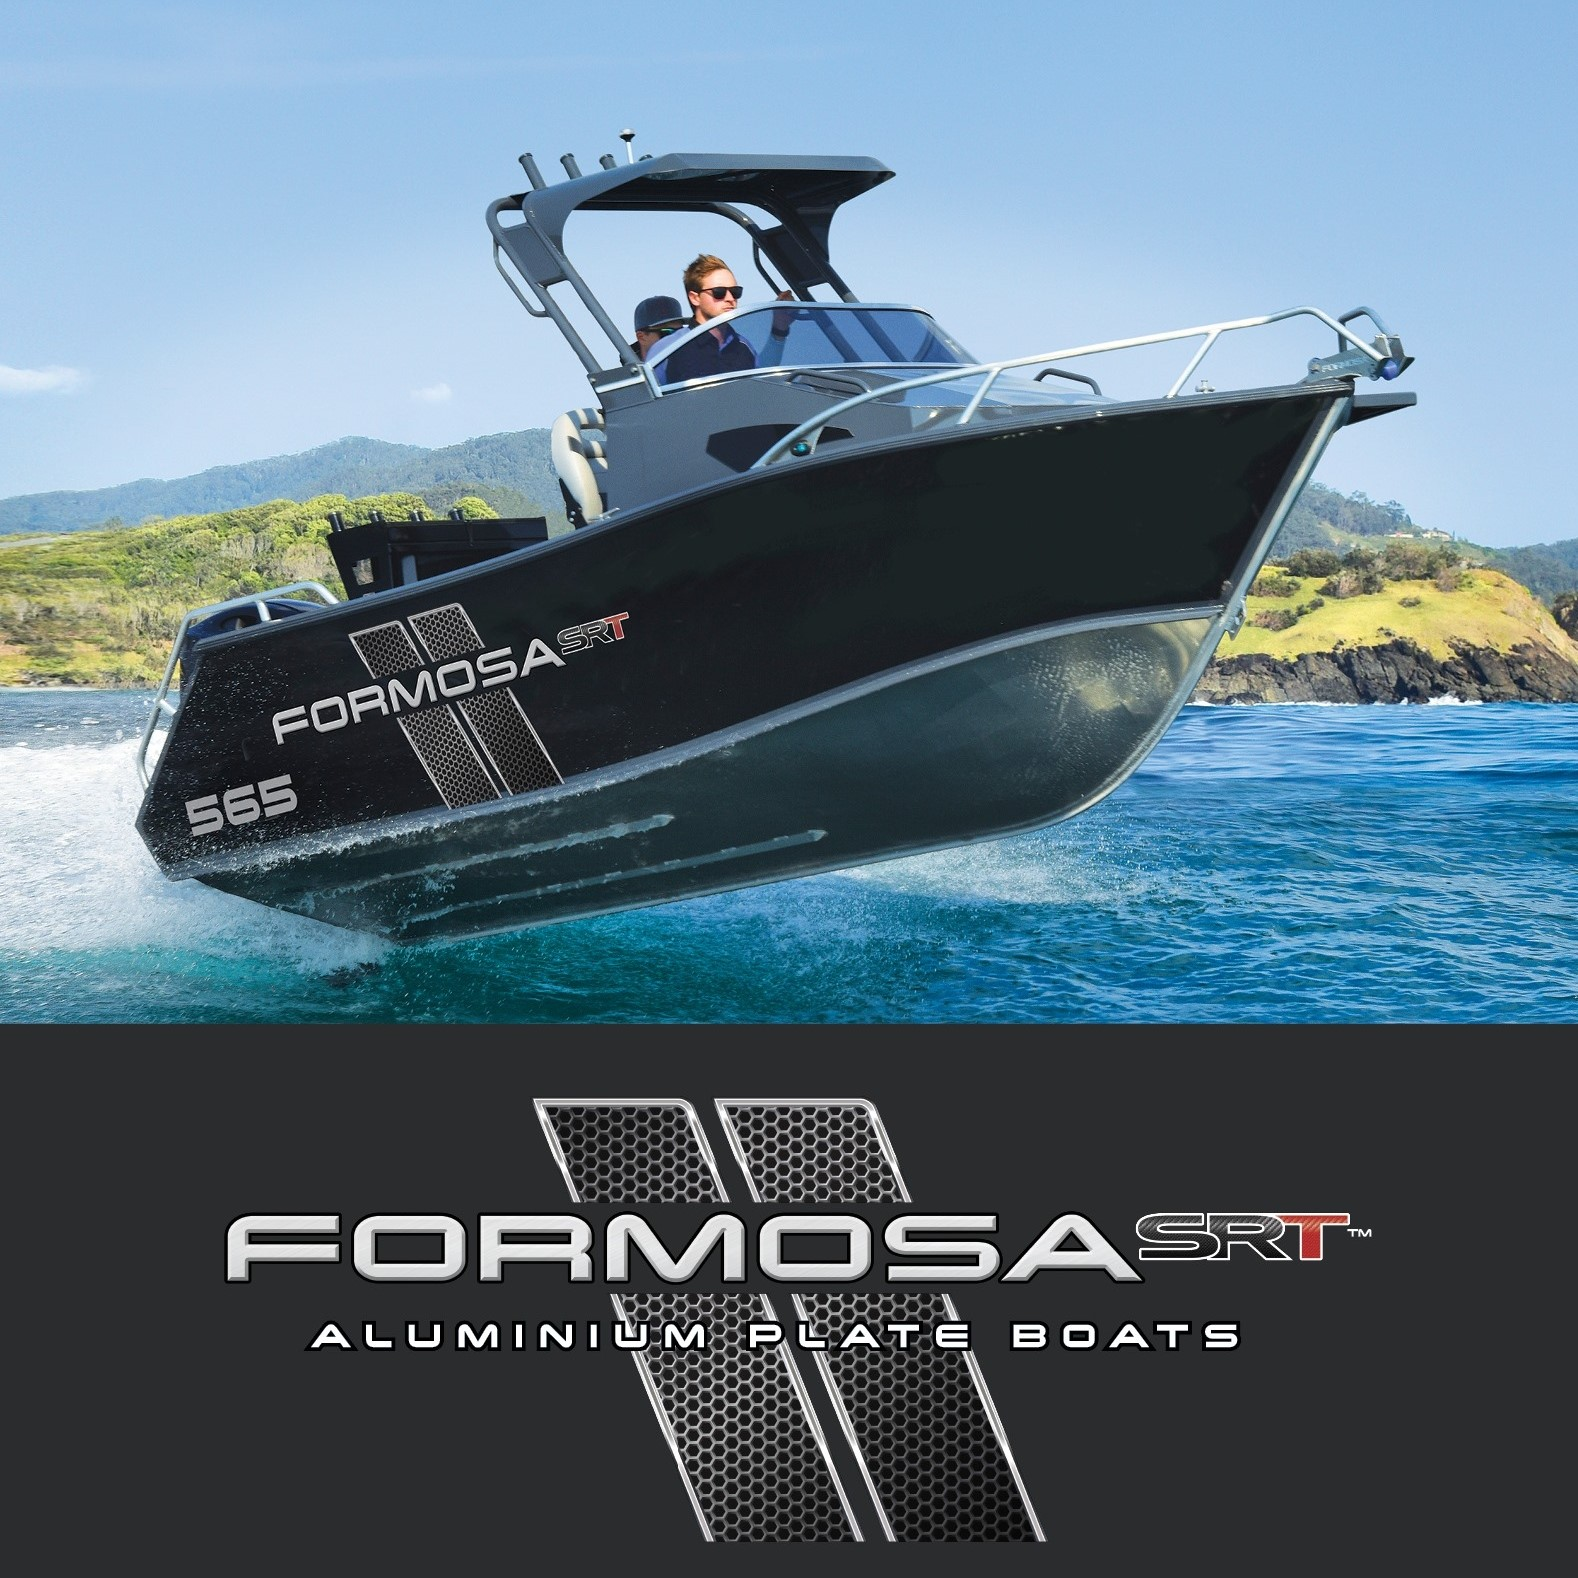 FORMOSA SRT and PRODECK MODELS NOW RELEASED